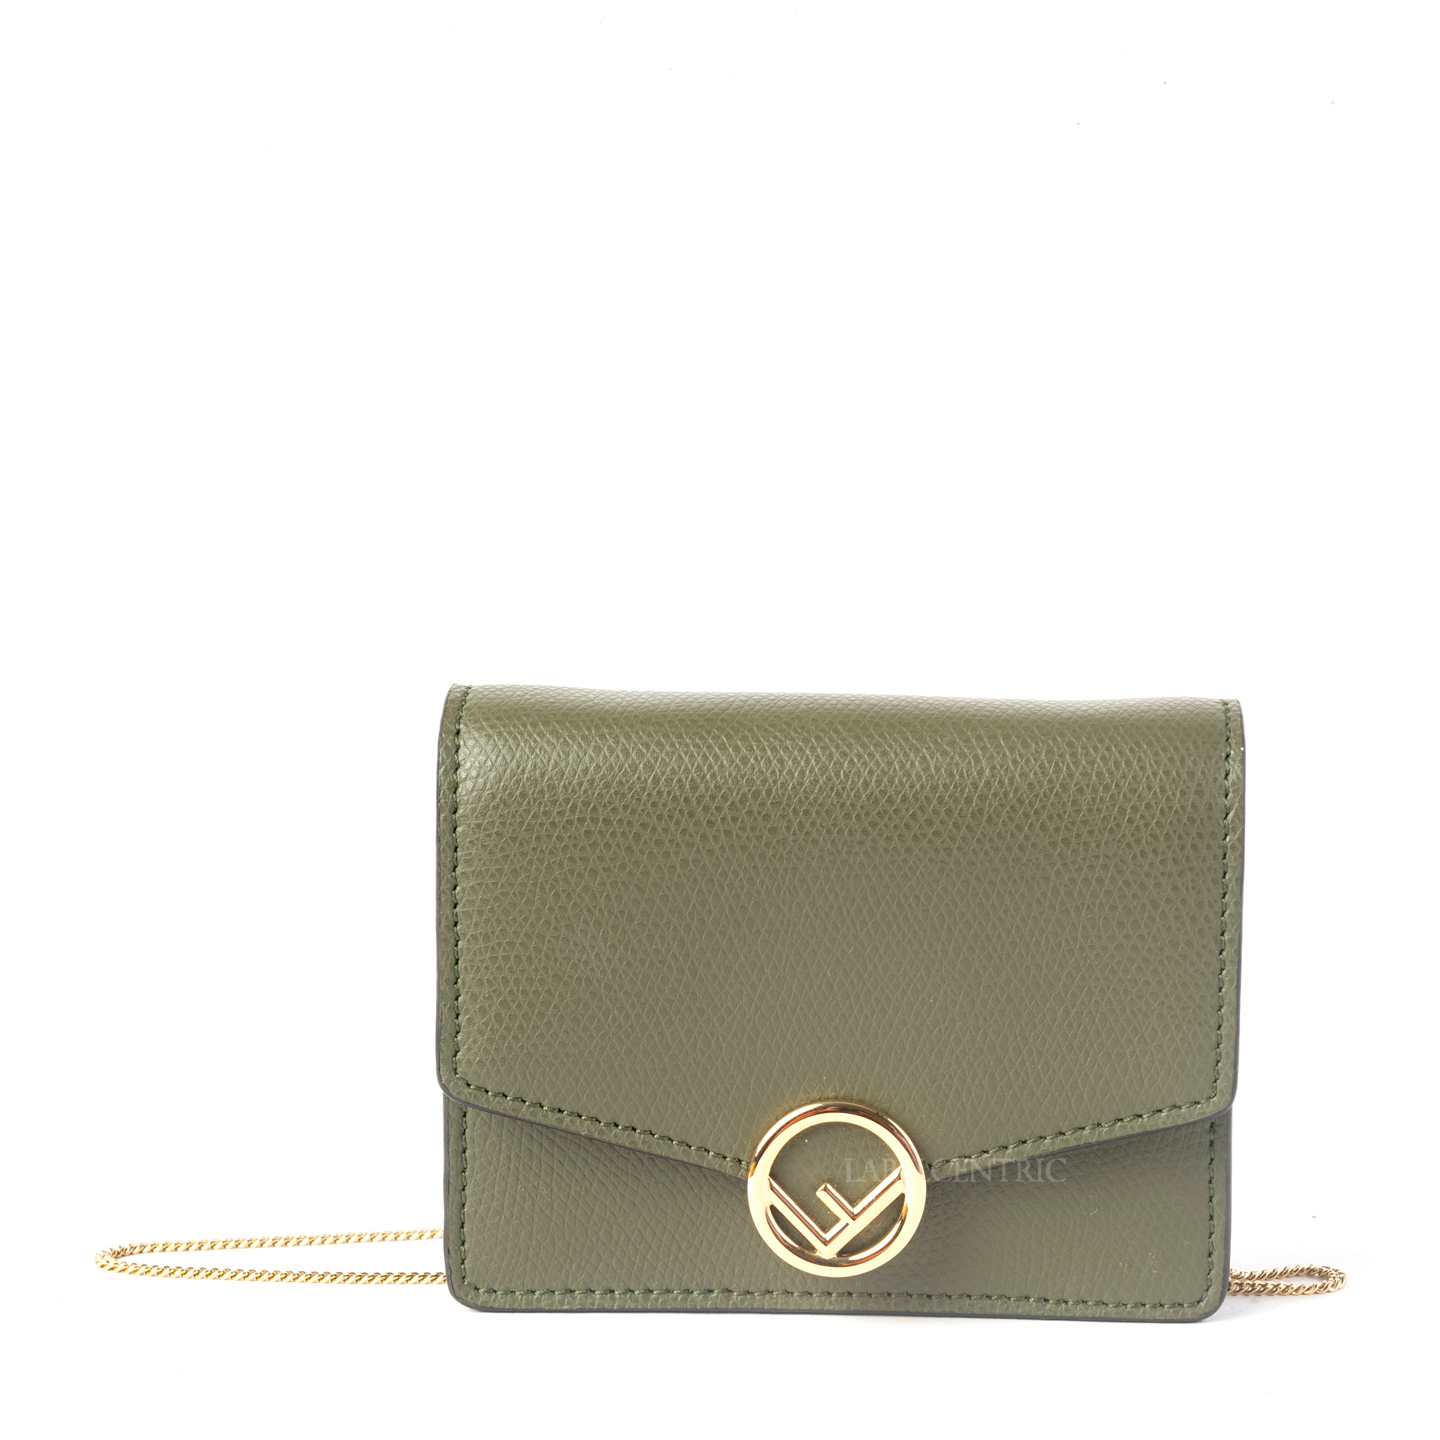 Fendi Cruise Leather Small Chain Wallet in Aspargo